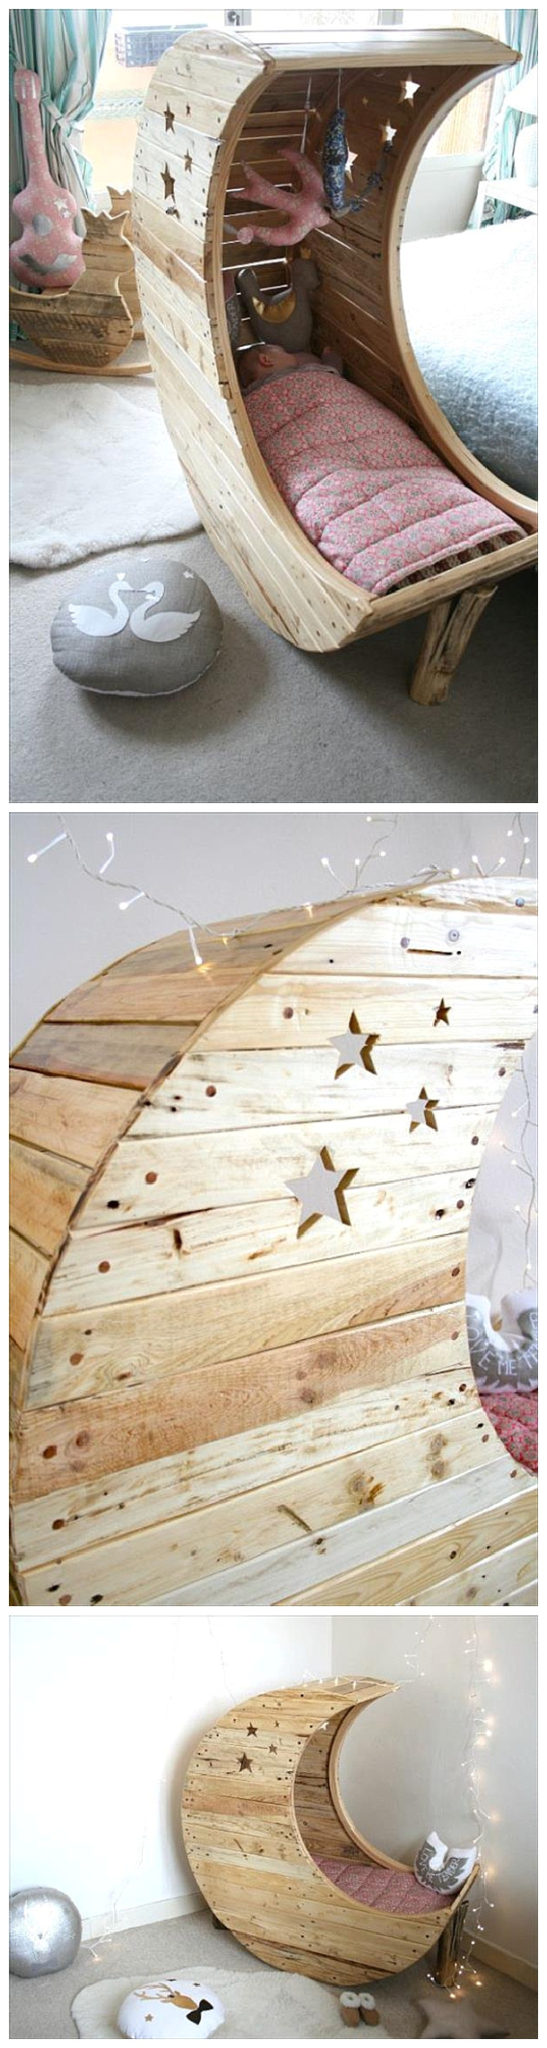 Do it Yourself Pallet Projects - DIY Pallet Moon Shaped Baby Cradle Woodworking Tutorial via 99 Pallets #easypalletprojects #beginnerwoodworking #easywoodworkingtutorials #woodworkingtutorials #DIYprojects #easyDIYprojects #diyhomedecor #diyfurniture